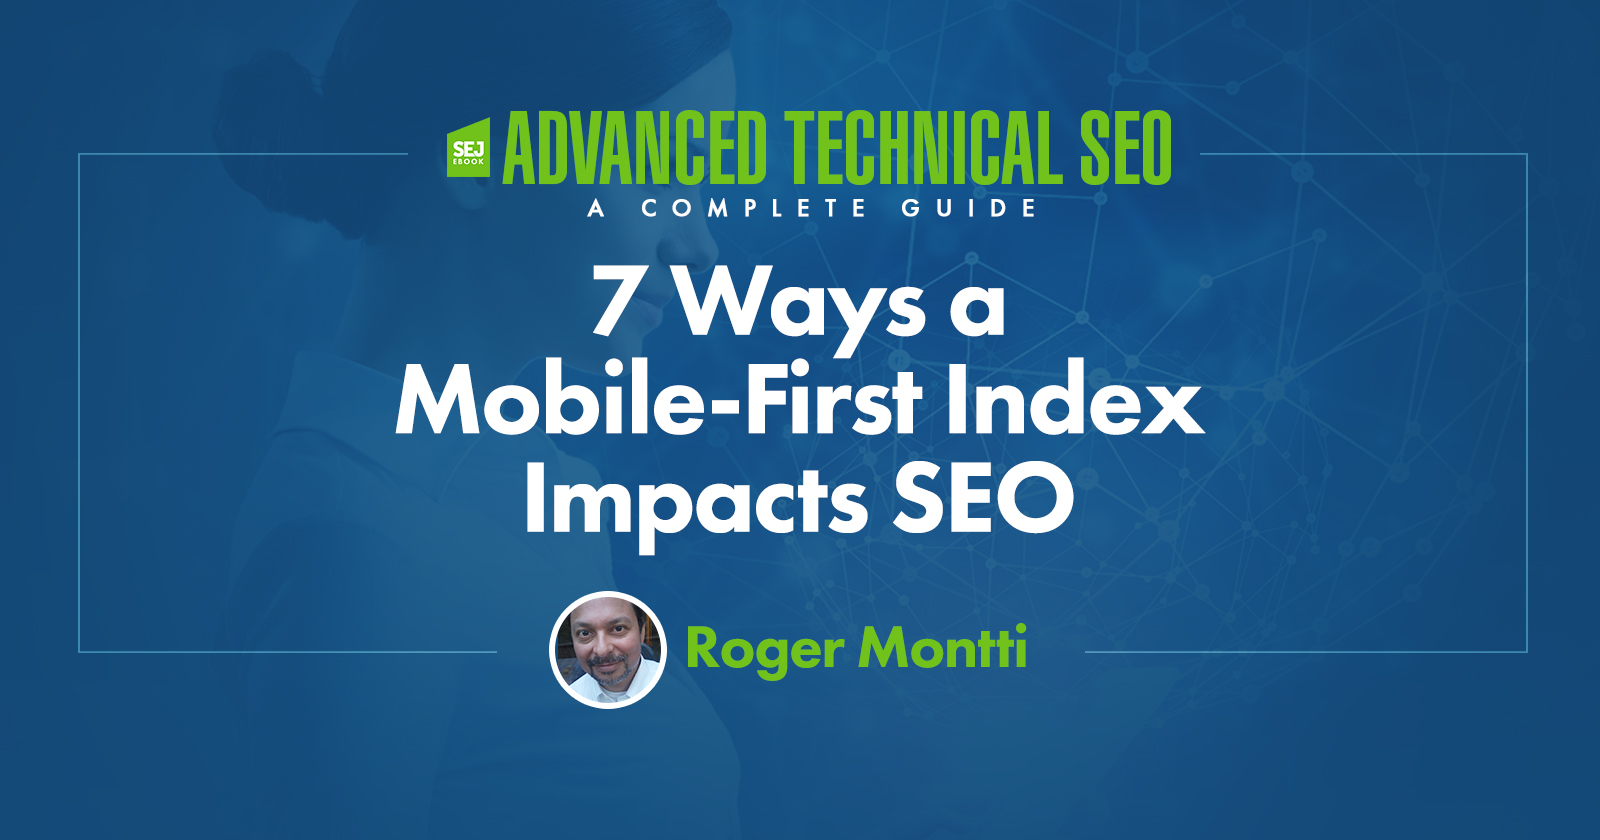 7 Ways a Mobile First Index Impacts SEO by @martinibuster